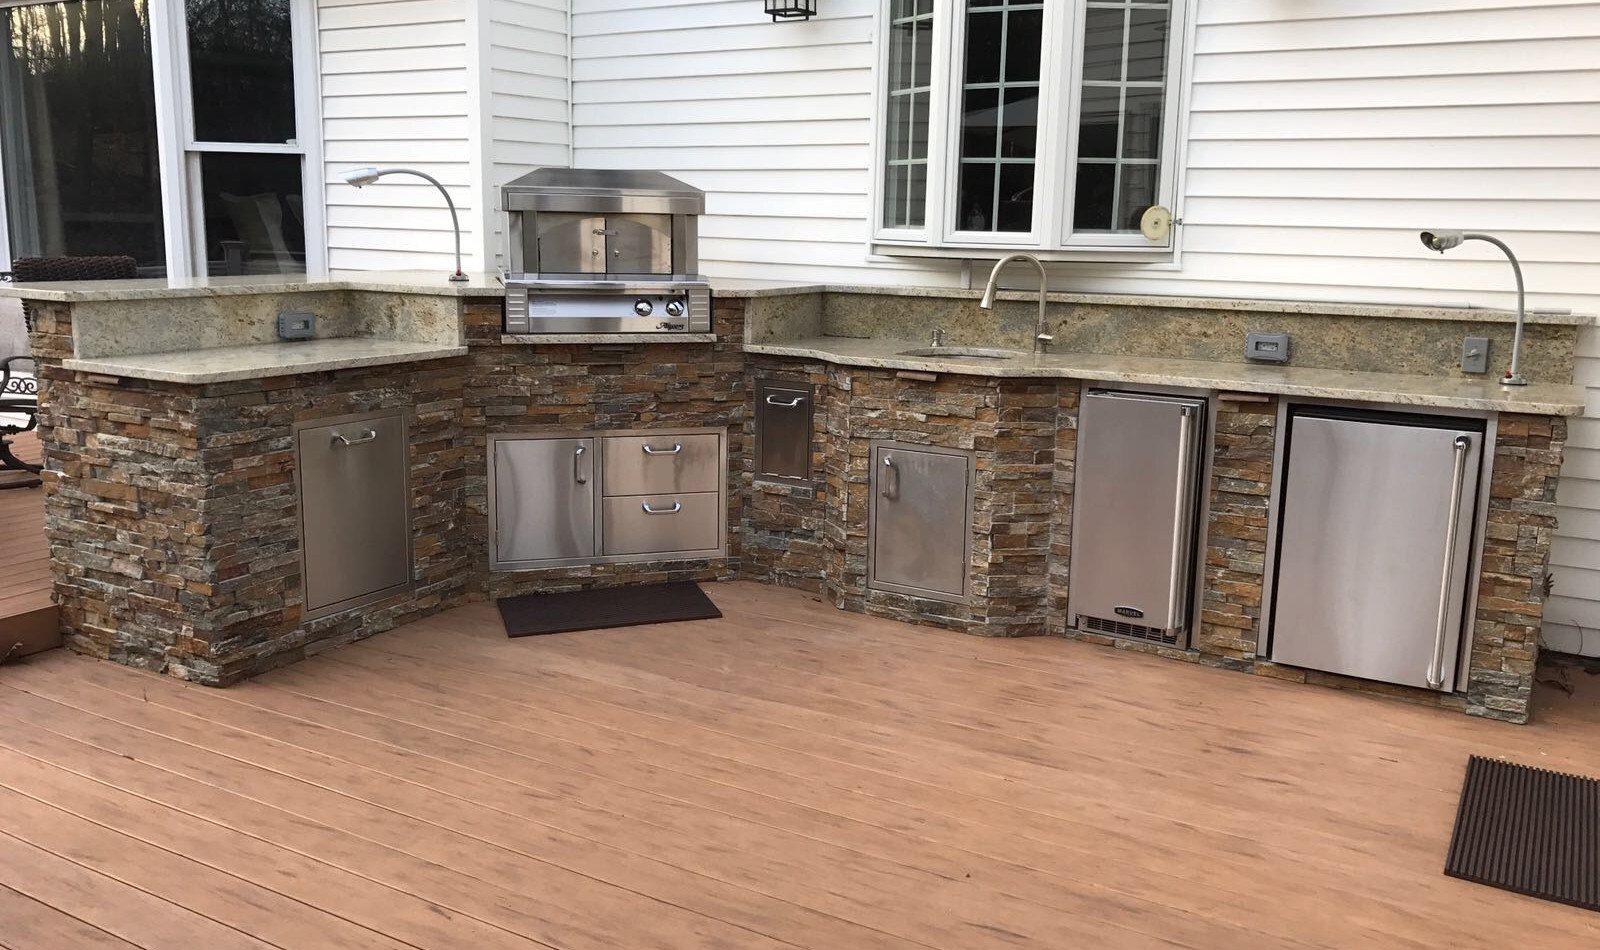 Stainless outdoor kitchen